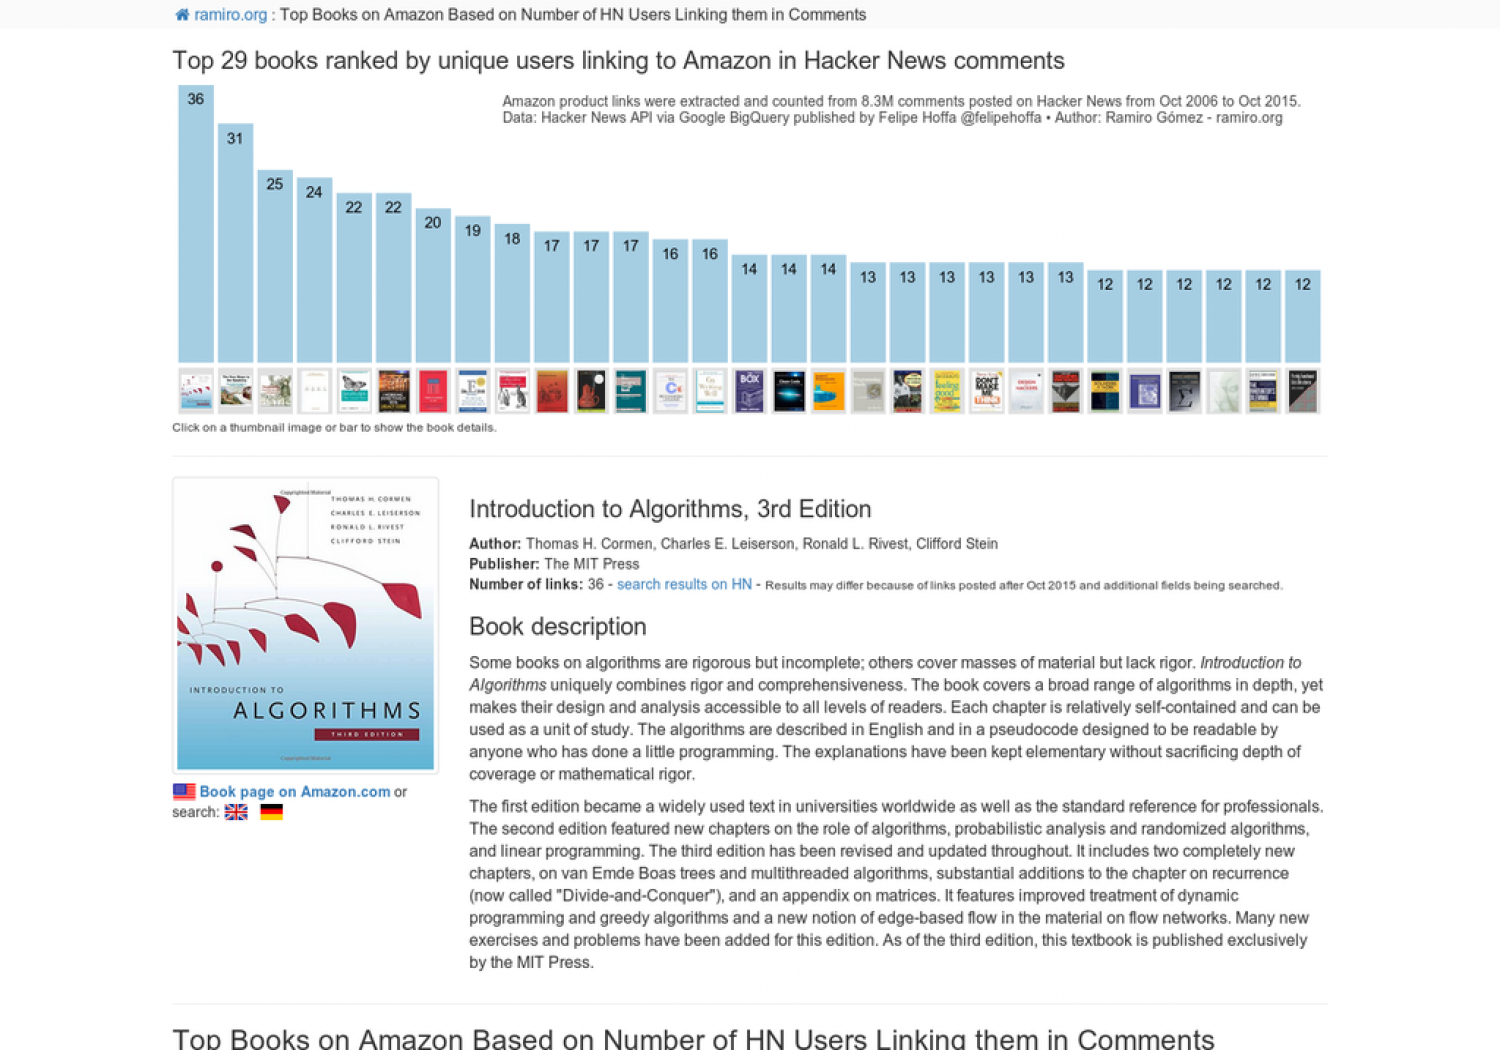 Top 29 books ranked by unique users linking to Amazon in Hacker News comments Infographic